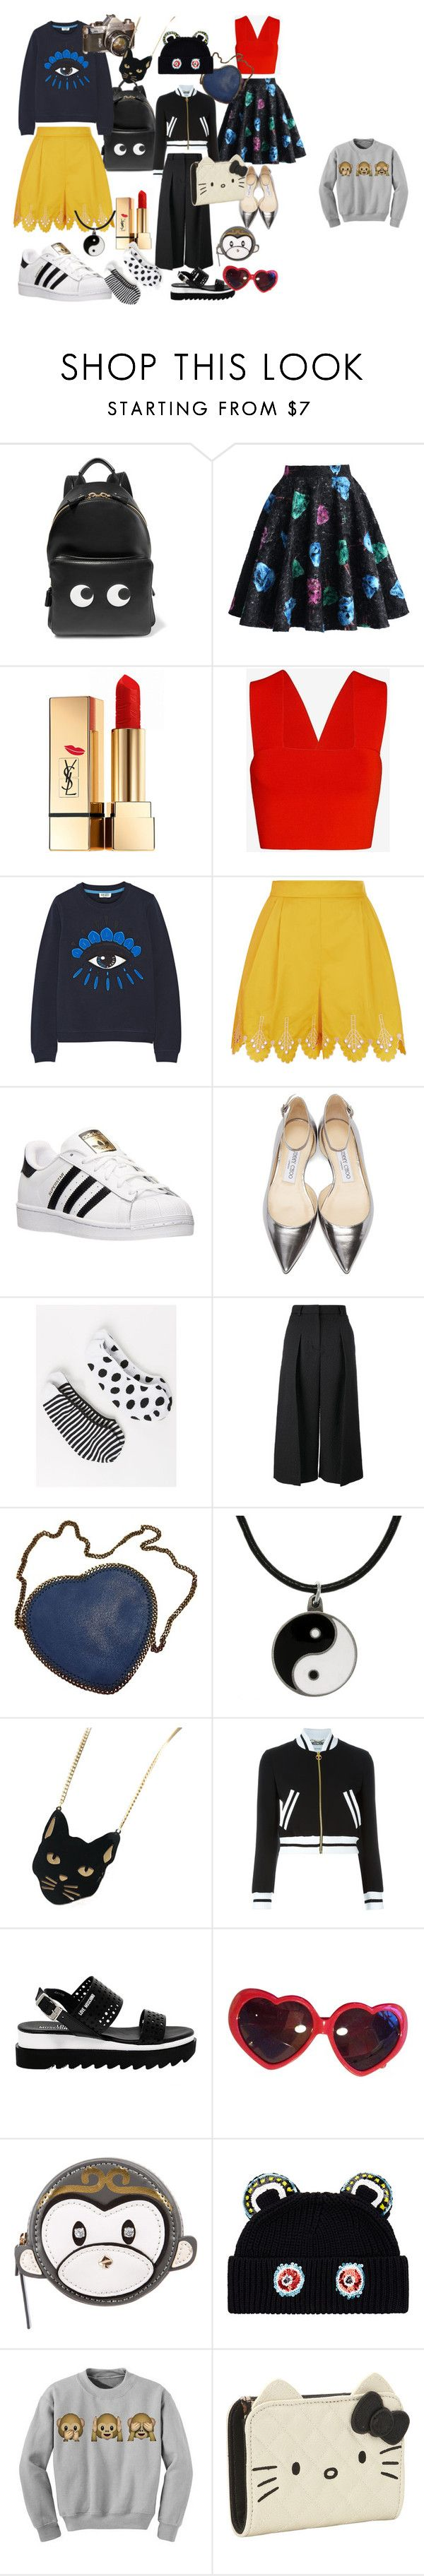 """""""Chinese Hong Kong Style"""" by jenny-ragnwaldh on Polyvore featuring Anya Hindmarch, Chicwish, Yves Saint Laurent, A.L.C., Kenzo, Temperley London, adidas, Jimmy Choo, Lane Bryant and Erdem"""